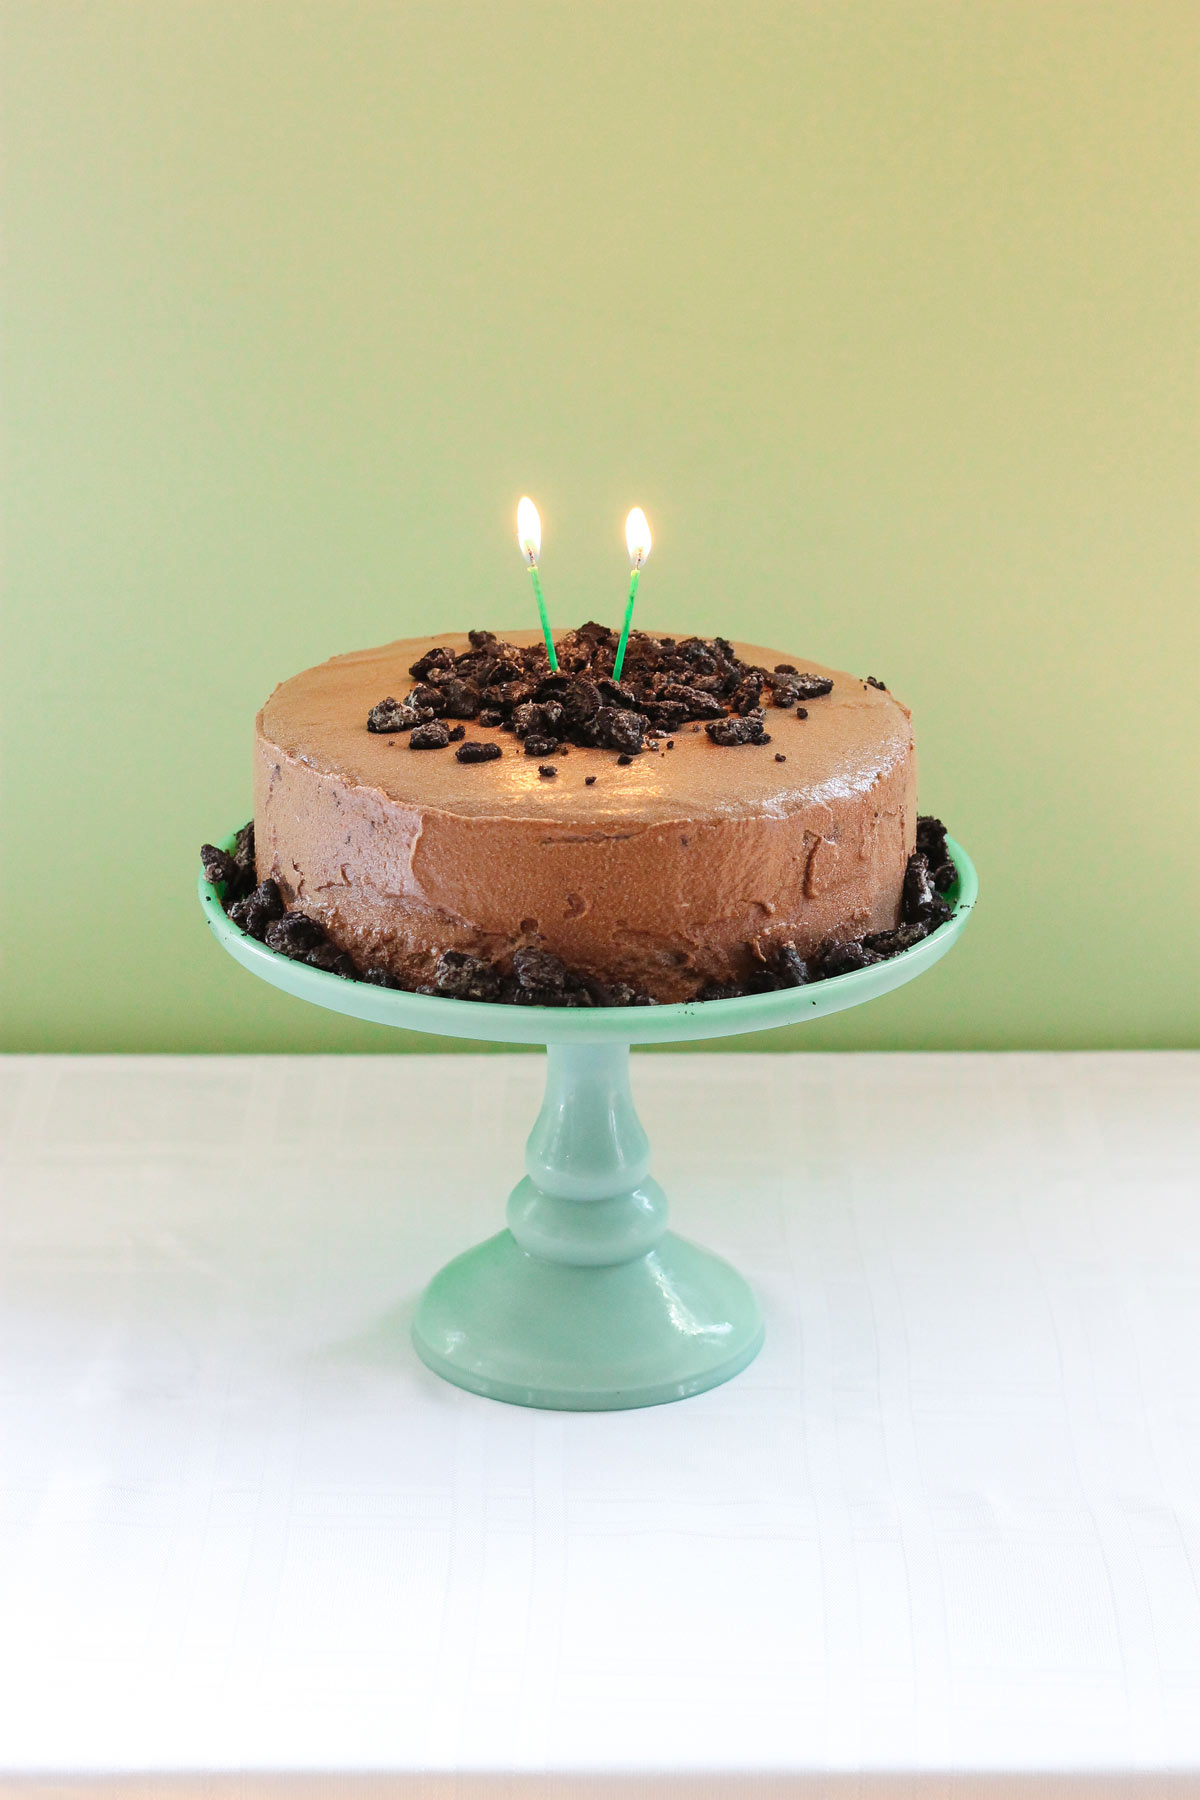 Mocha cake with mocha frosting with candles on a green cake platter